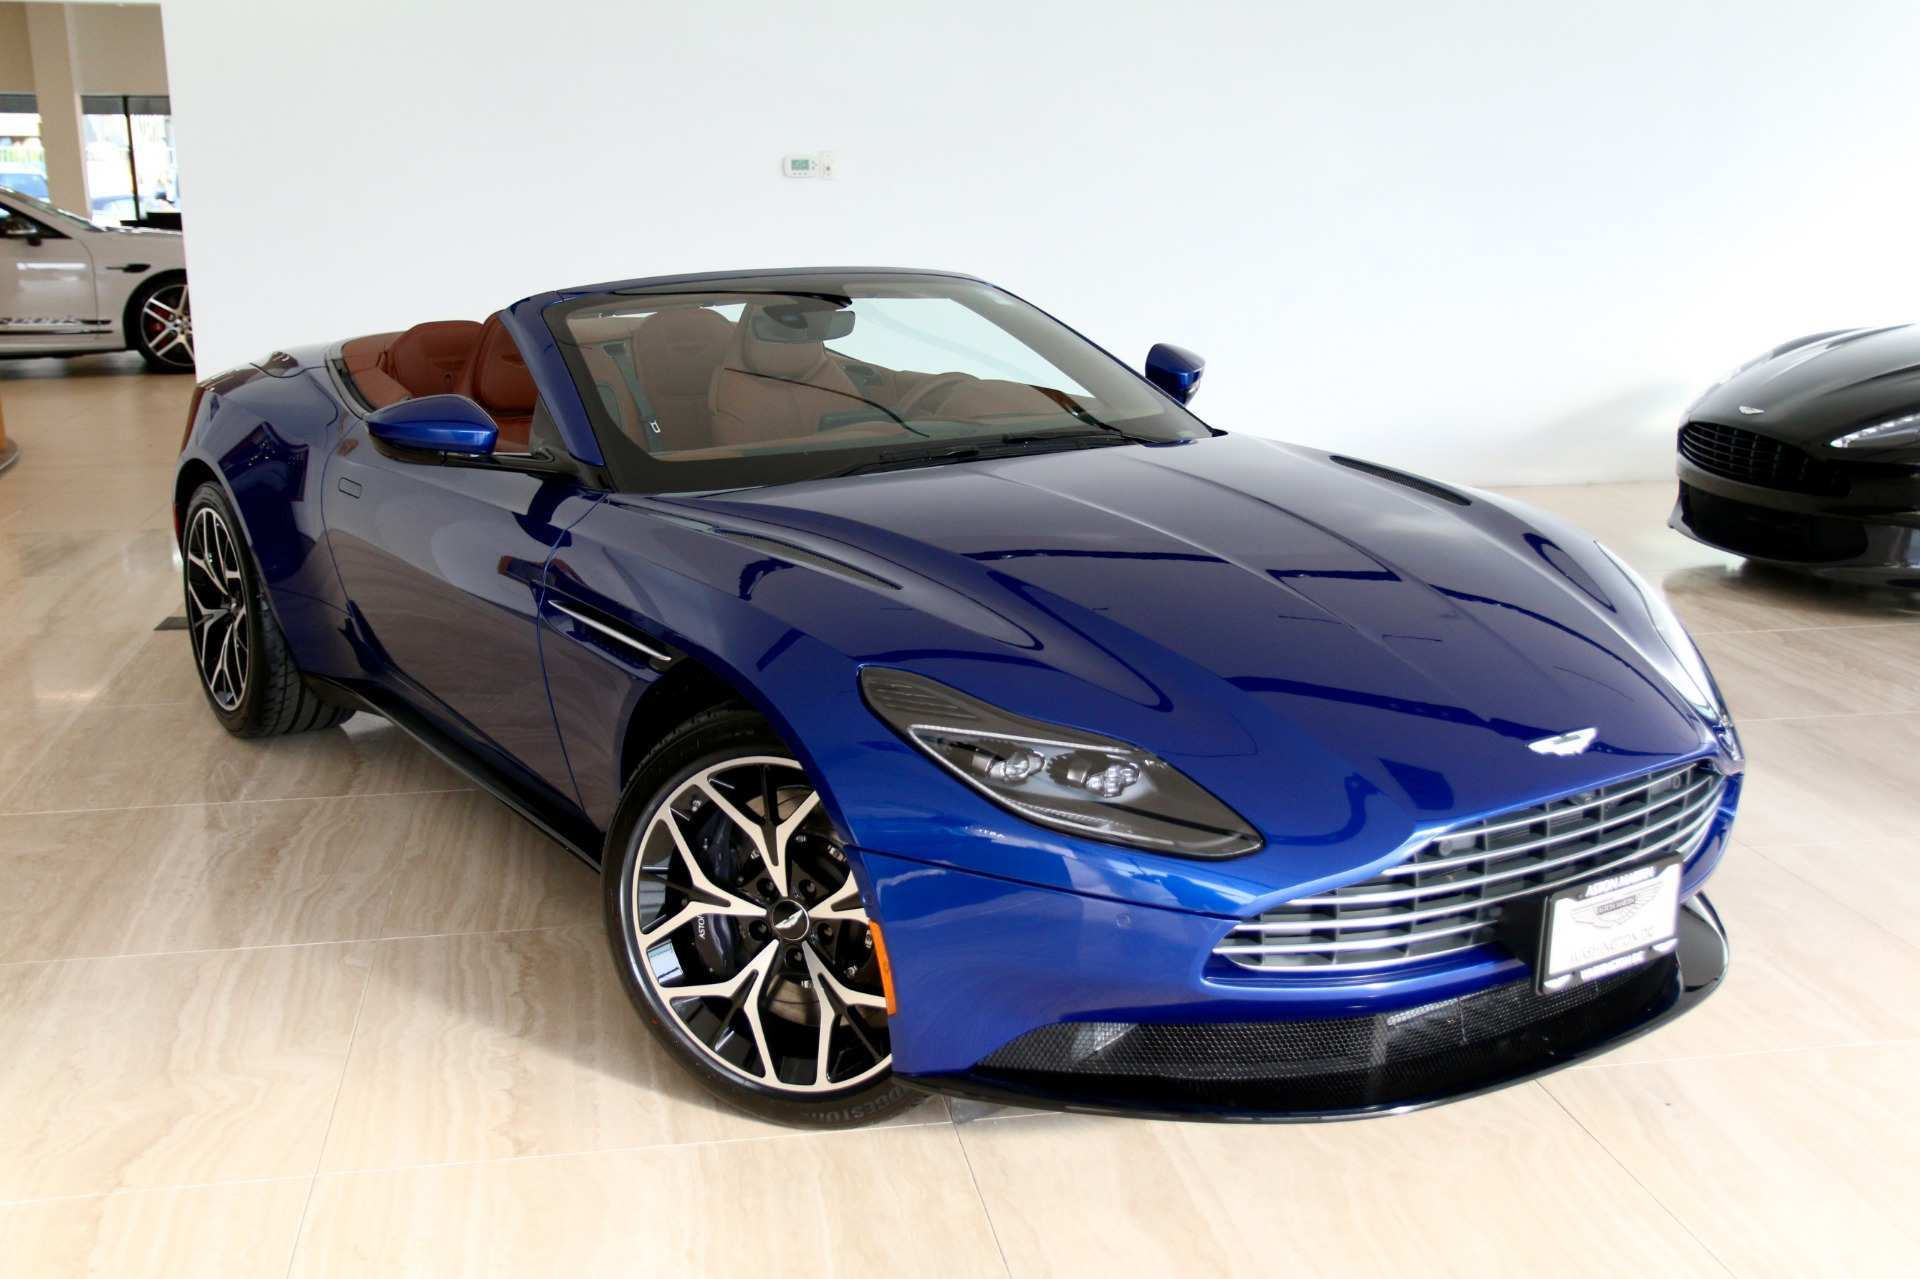 15 New 2019 Aston Martin Db11 Volante Rumors for 2019 Aston Martin Db11 Volante